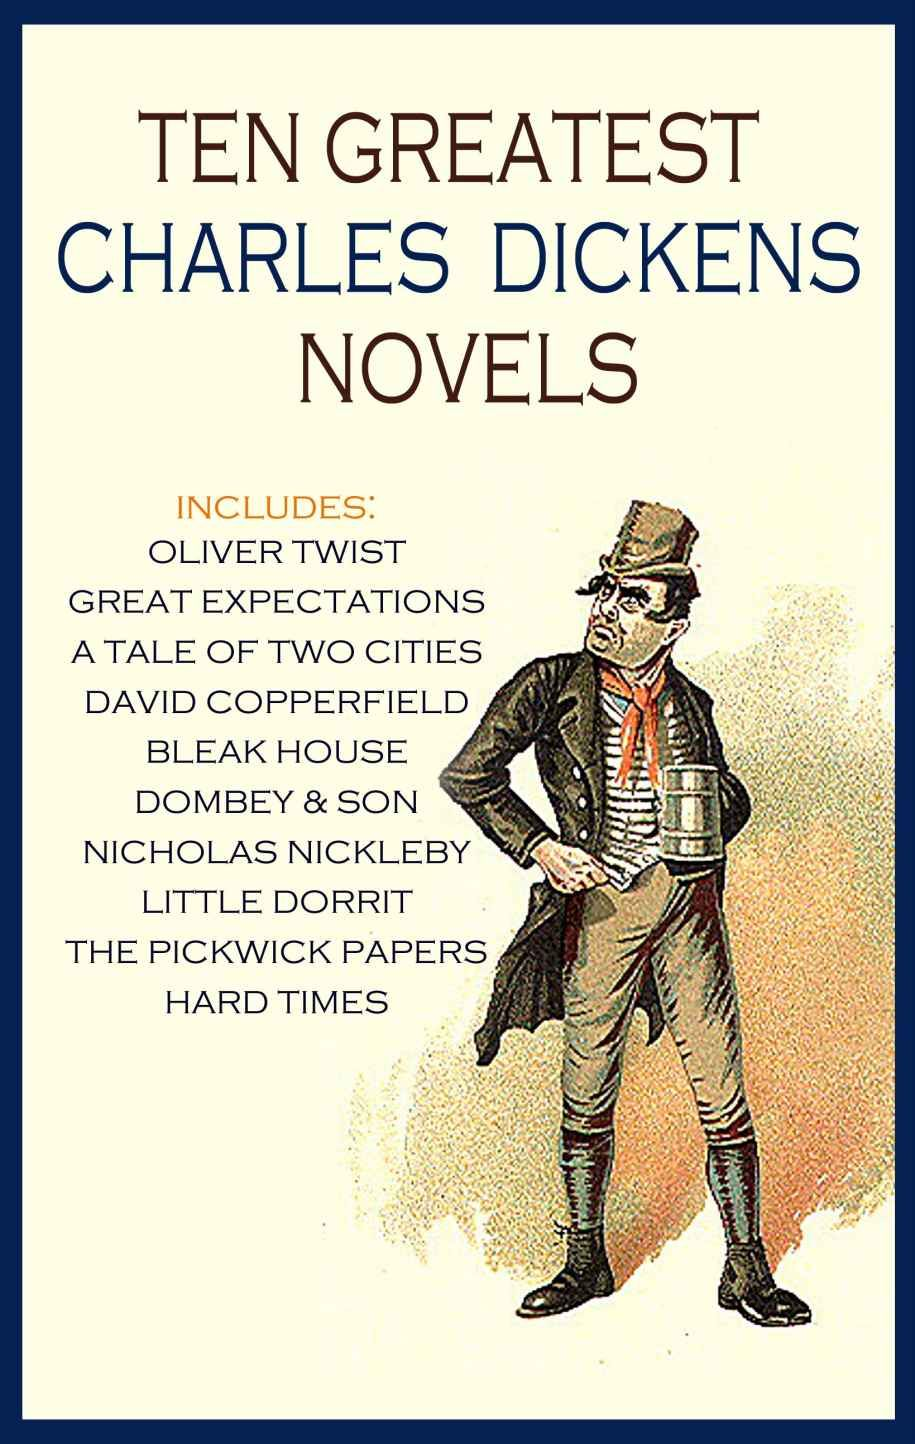 Robot Check Charles Dickens Novels Dickens